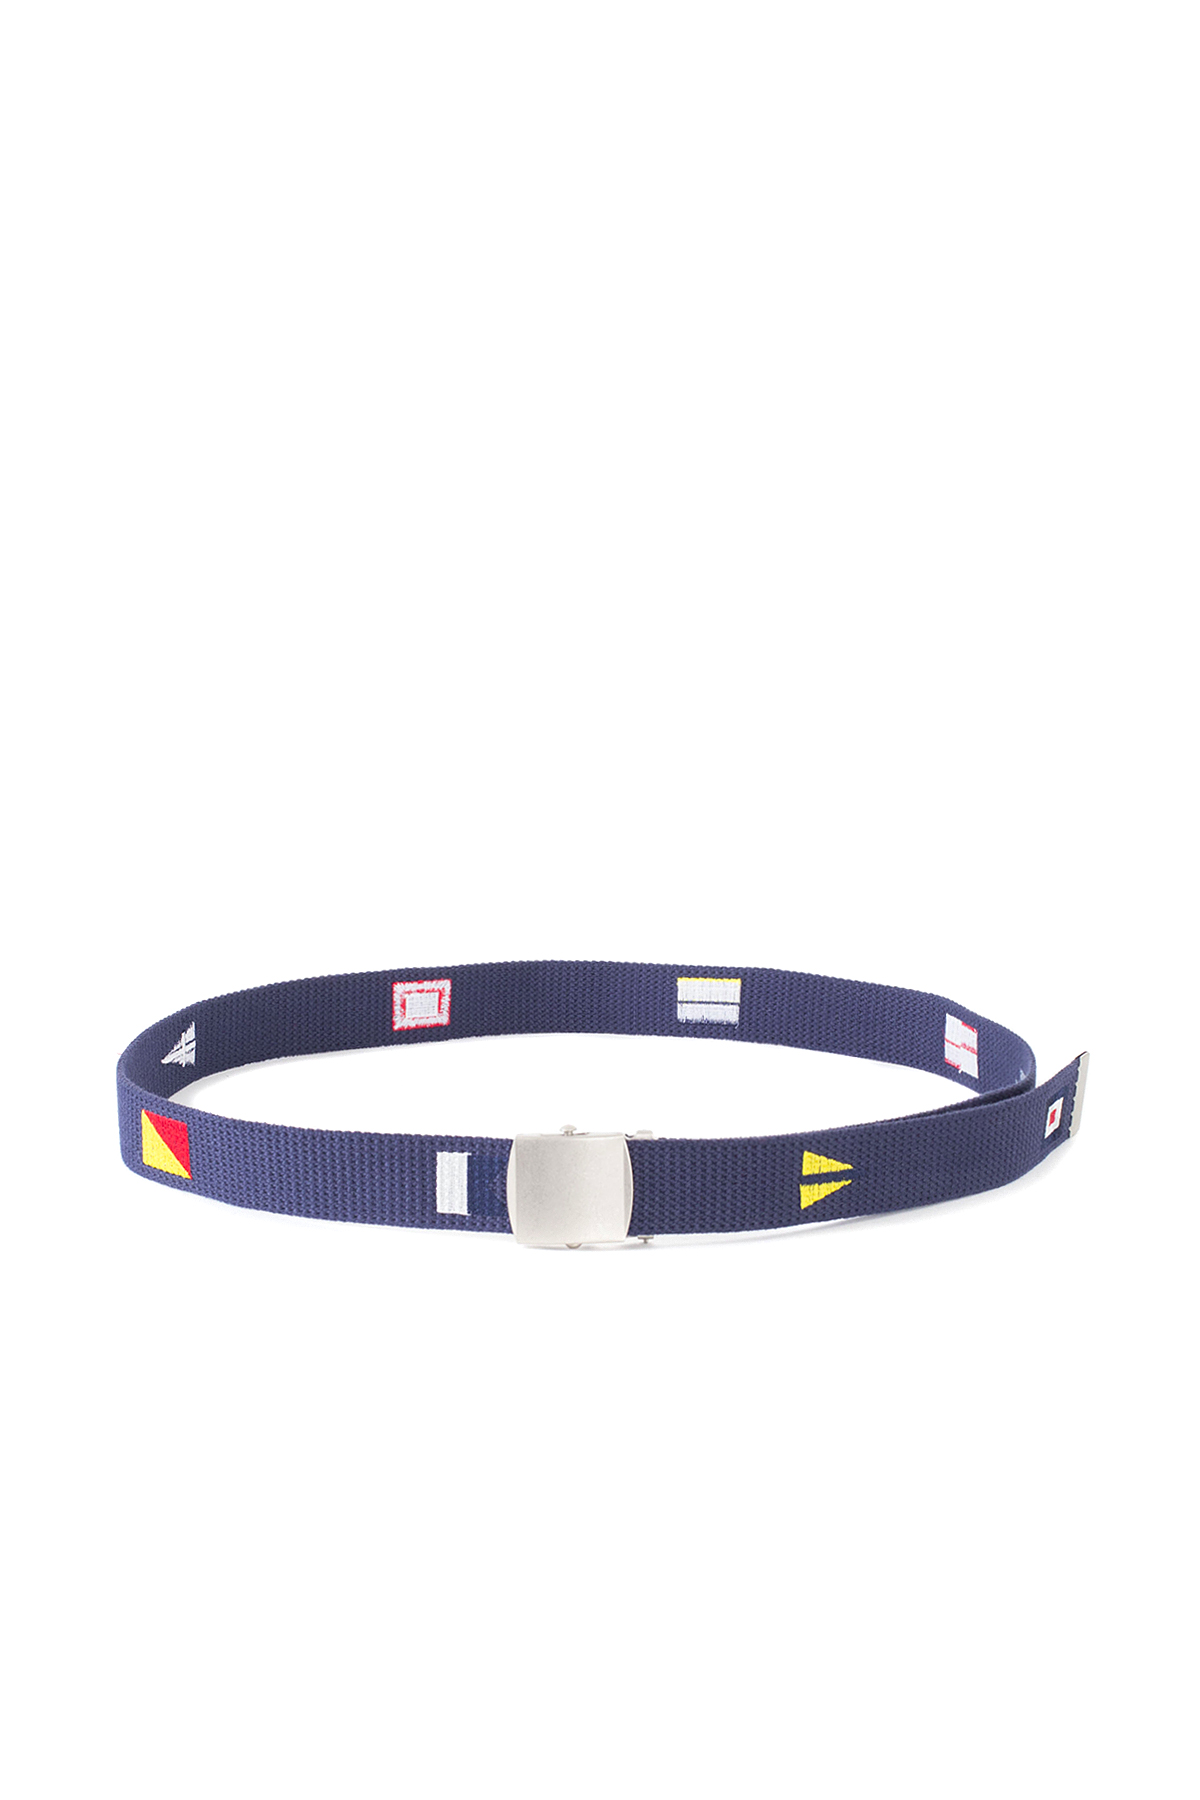 Infielder Design : Gacha Belt (Black)